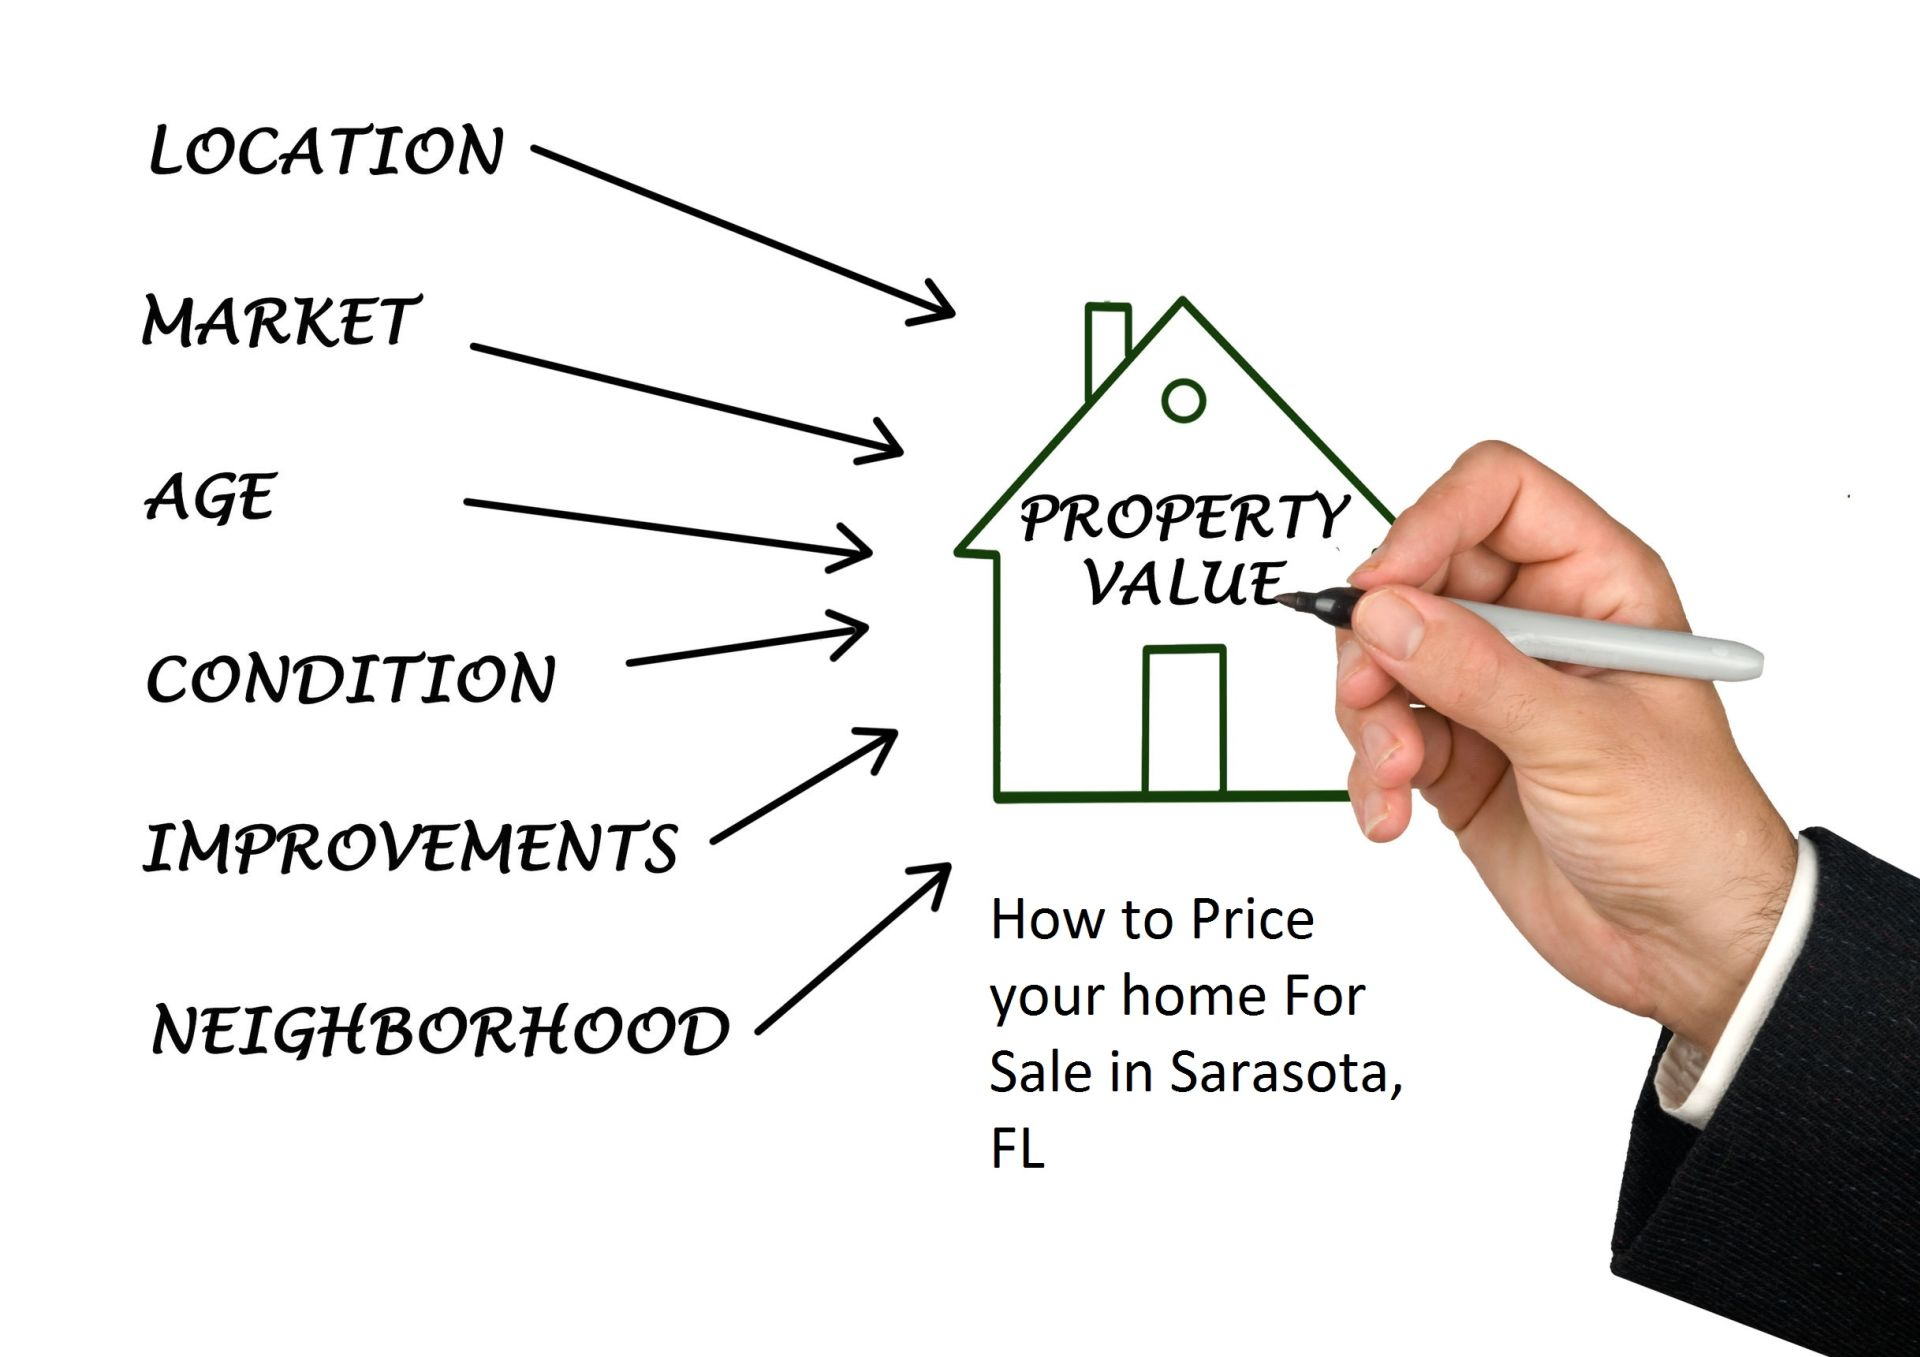 Guide On How To Price Your Home For Sale in Sarasota, FL